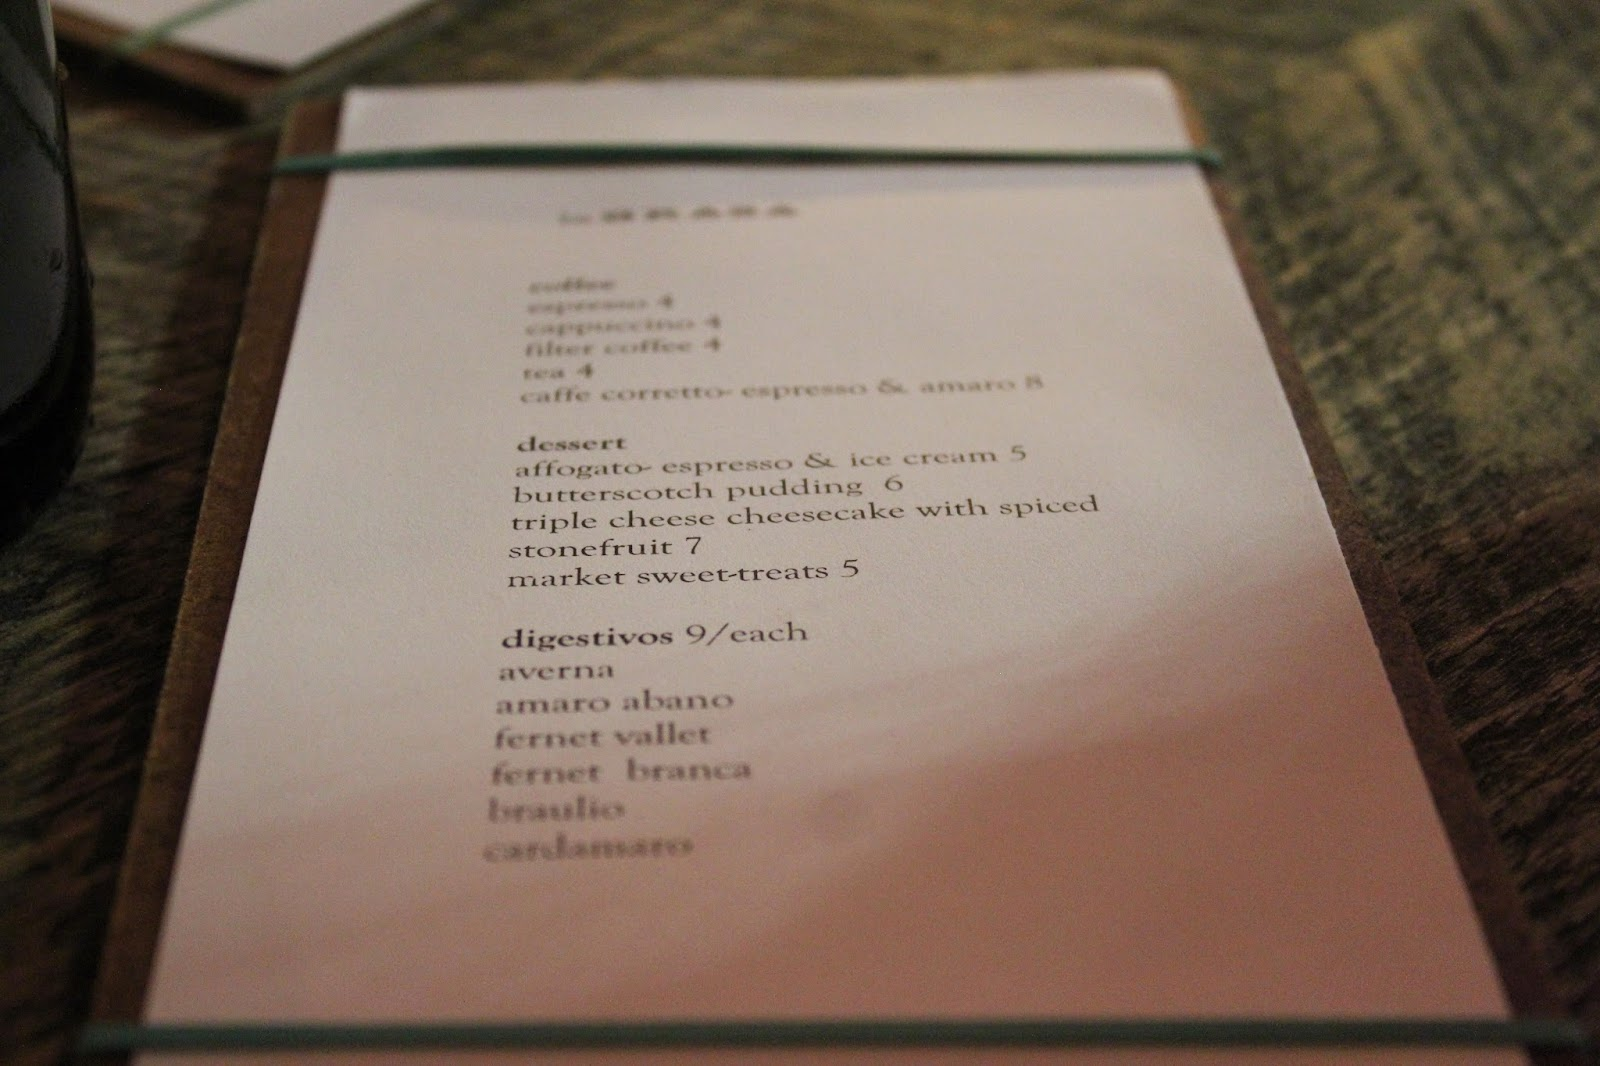 Dessert menu at La Brasa, Somerville, Mass.